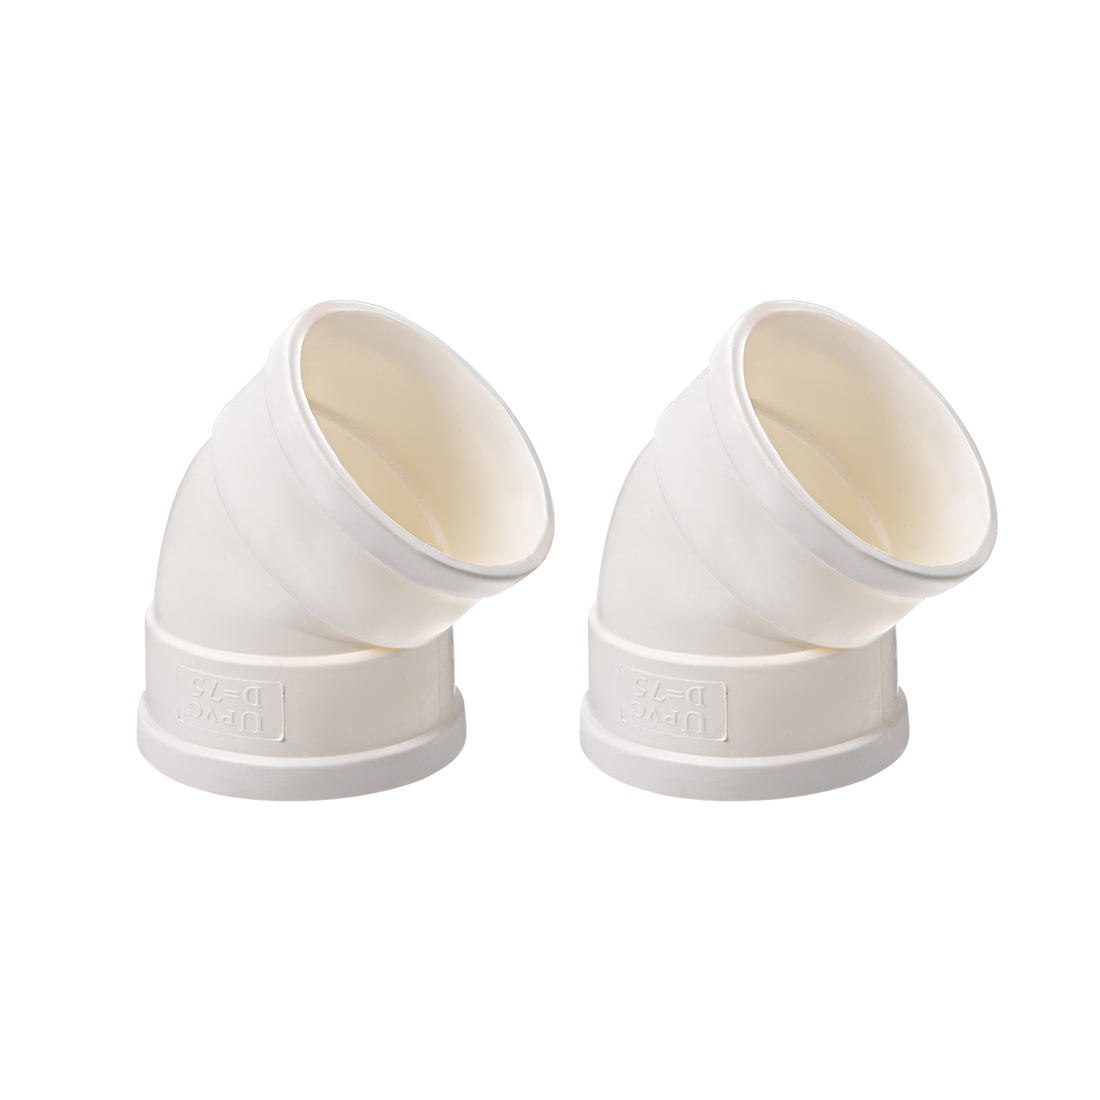 PVC Pipe Fitting 45 Degree Elbow Schedule 40 White 2-1/2-Inch Socket 2pcs